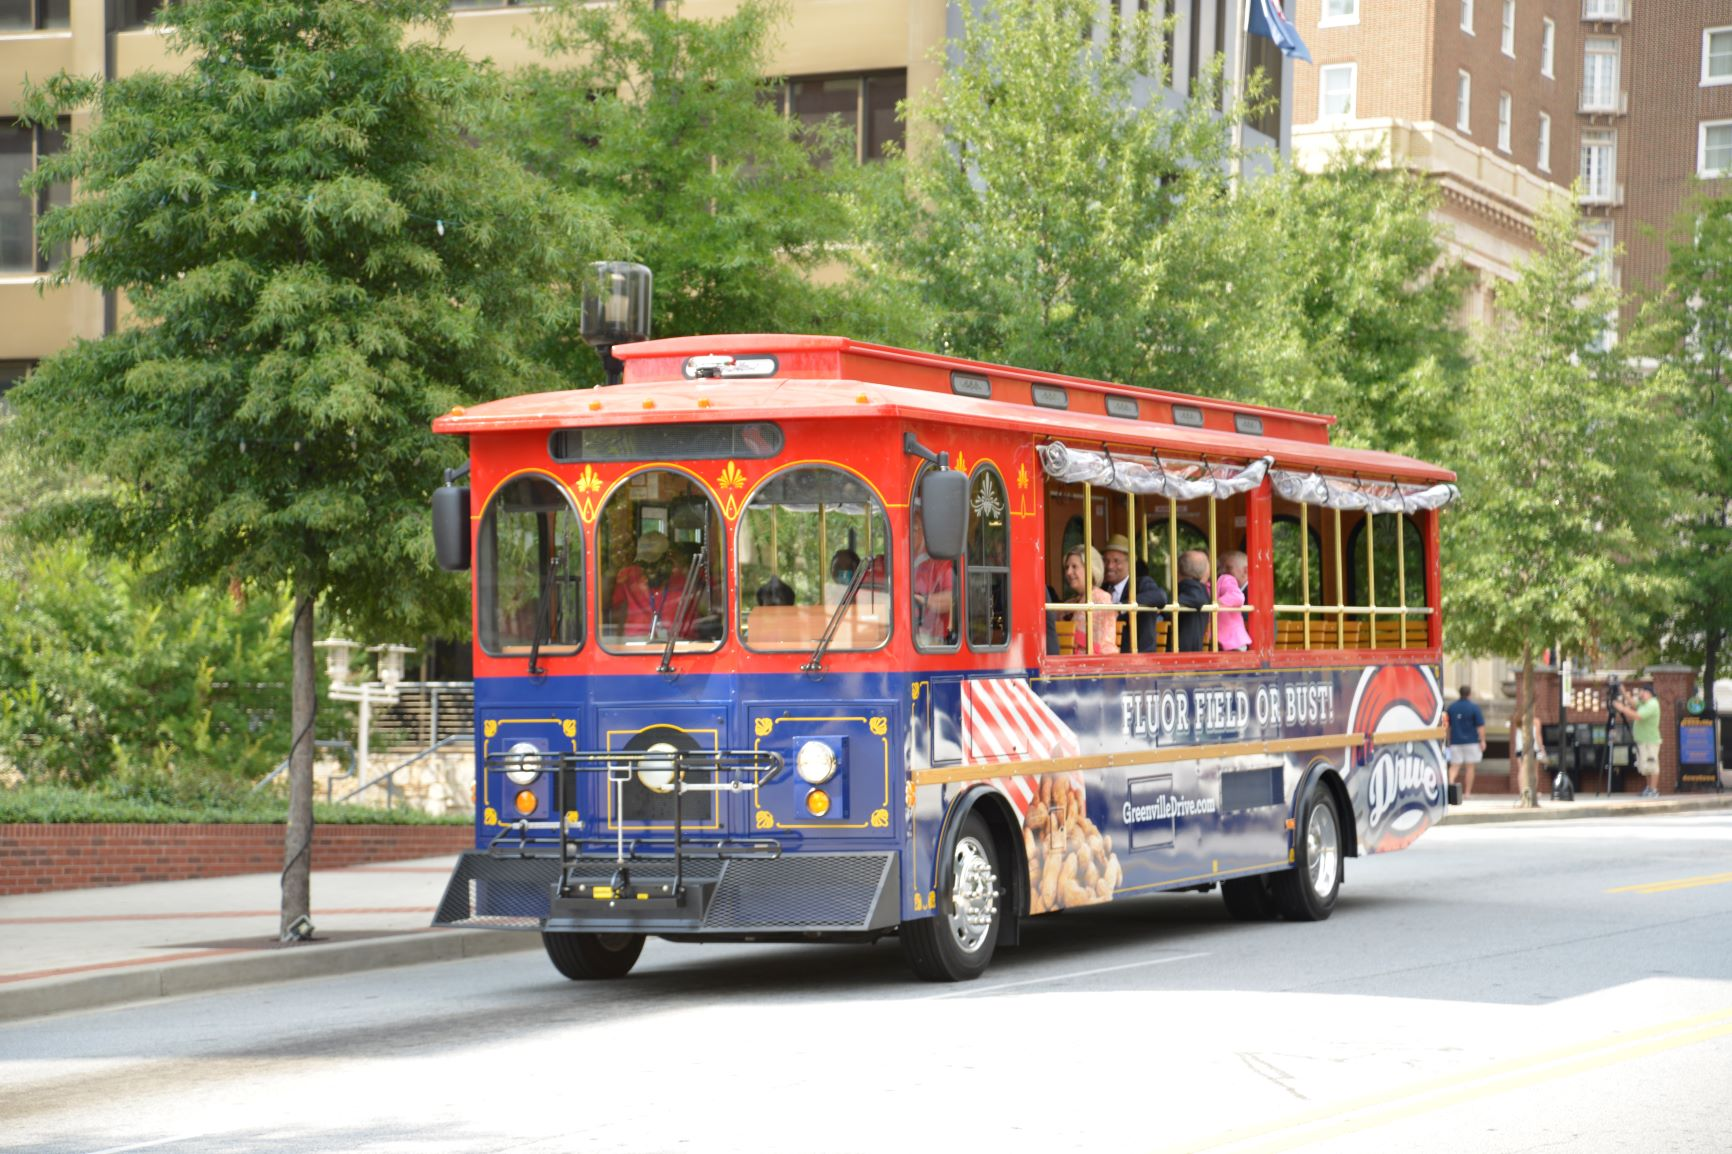 City of Greenville trolley